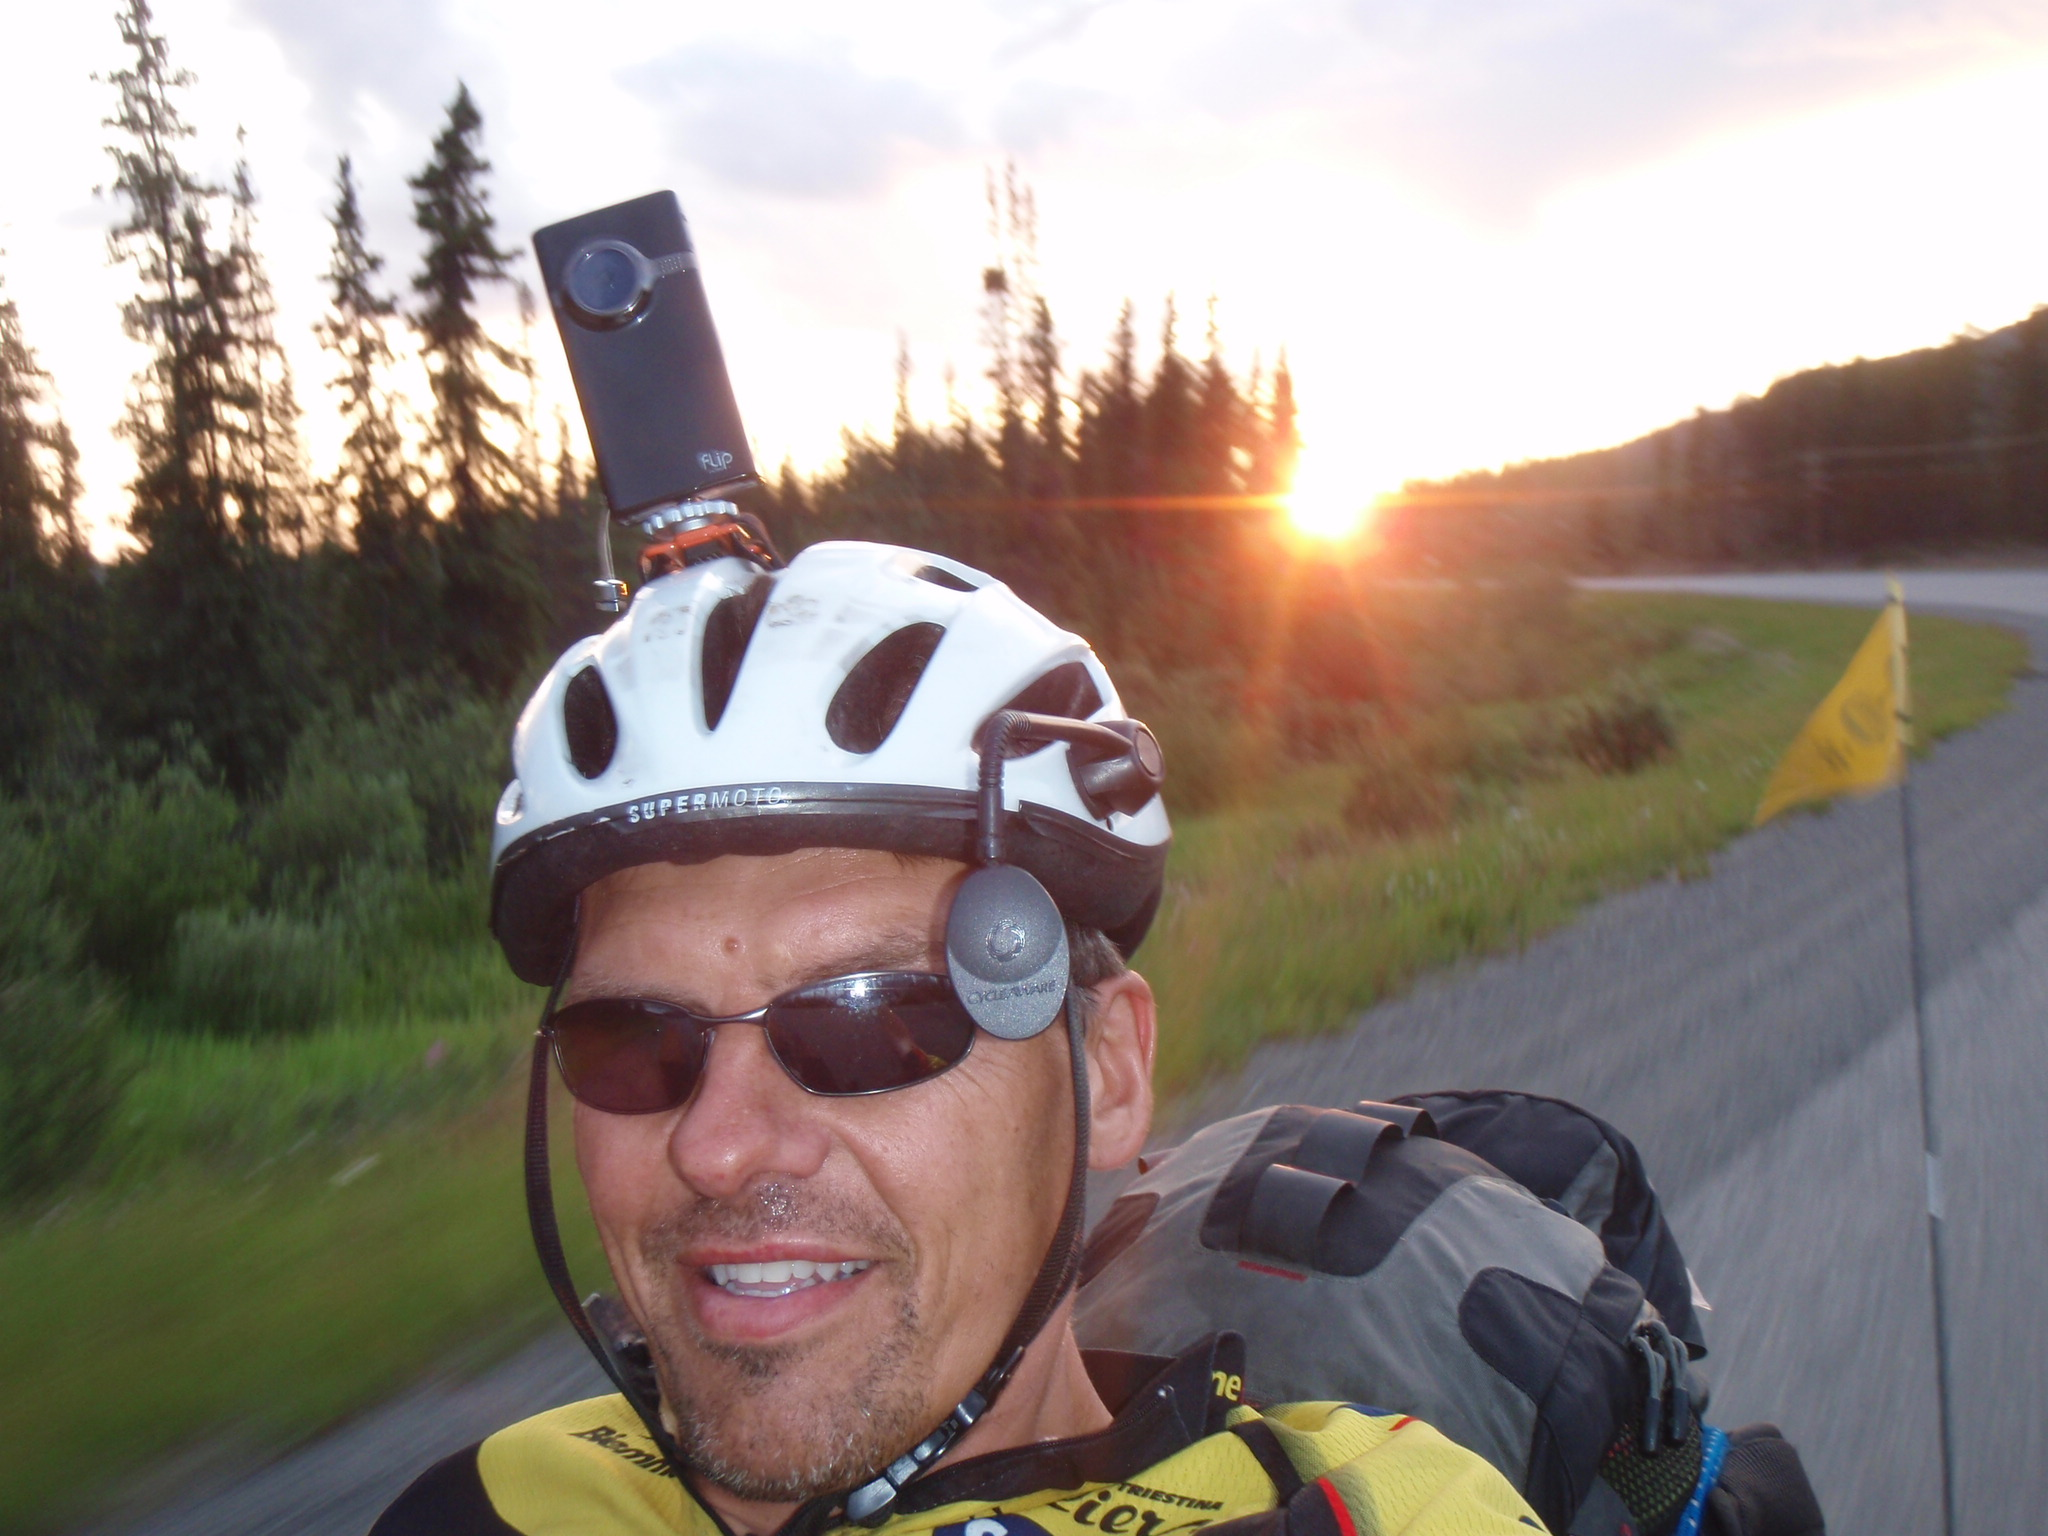 Arriving in Teslin at 11:20pm close to sunset